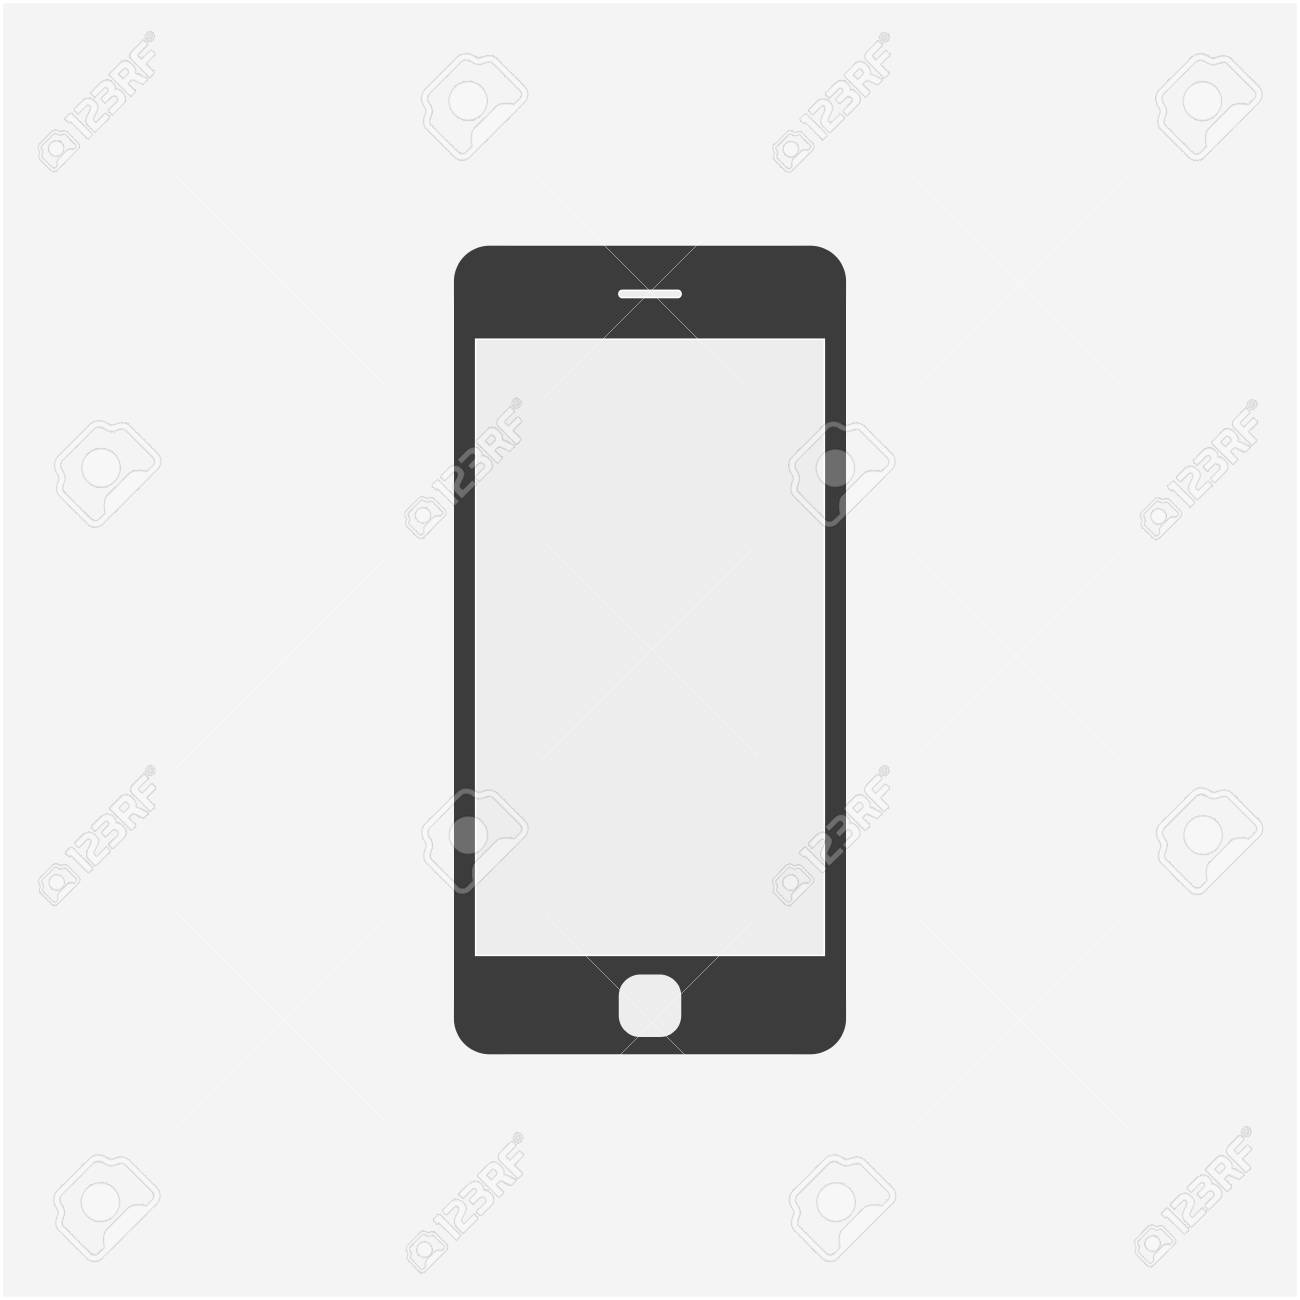 mobile phone icon vector illustration smartphone icon royalty free rh 123rf com phone icon vector freepik phone icon vector cdr